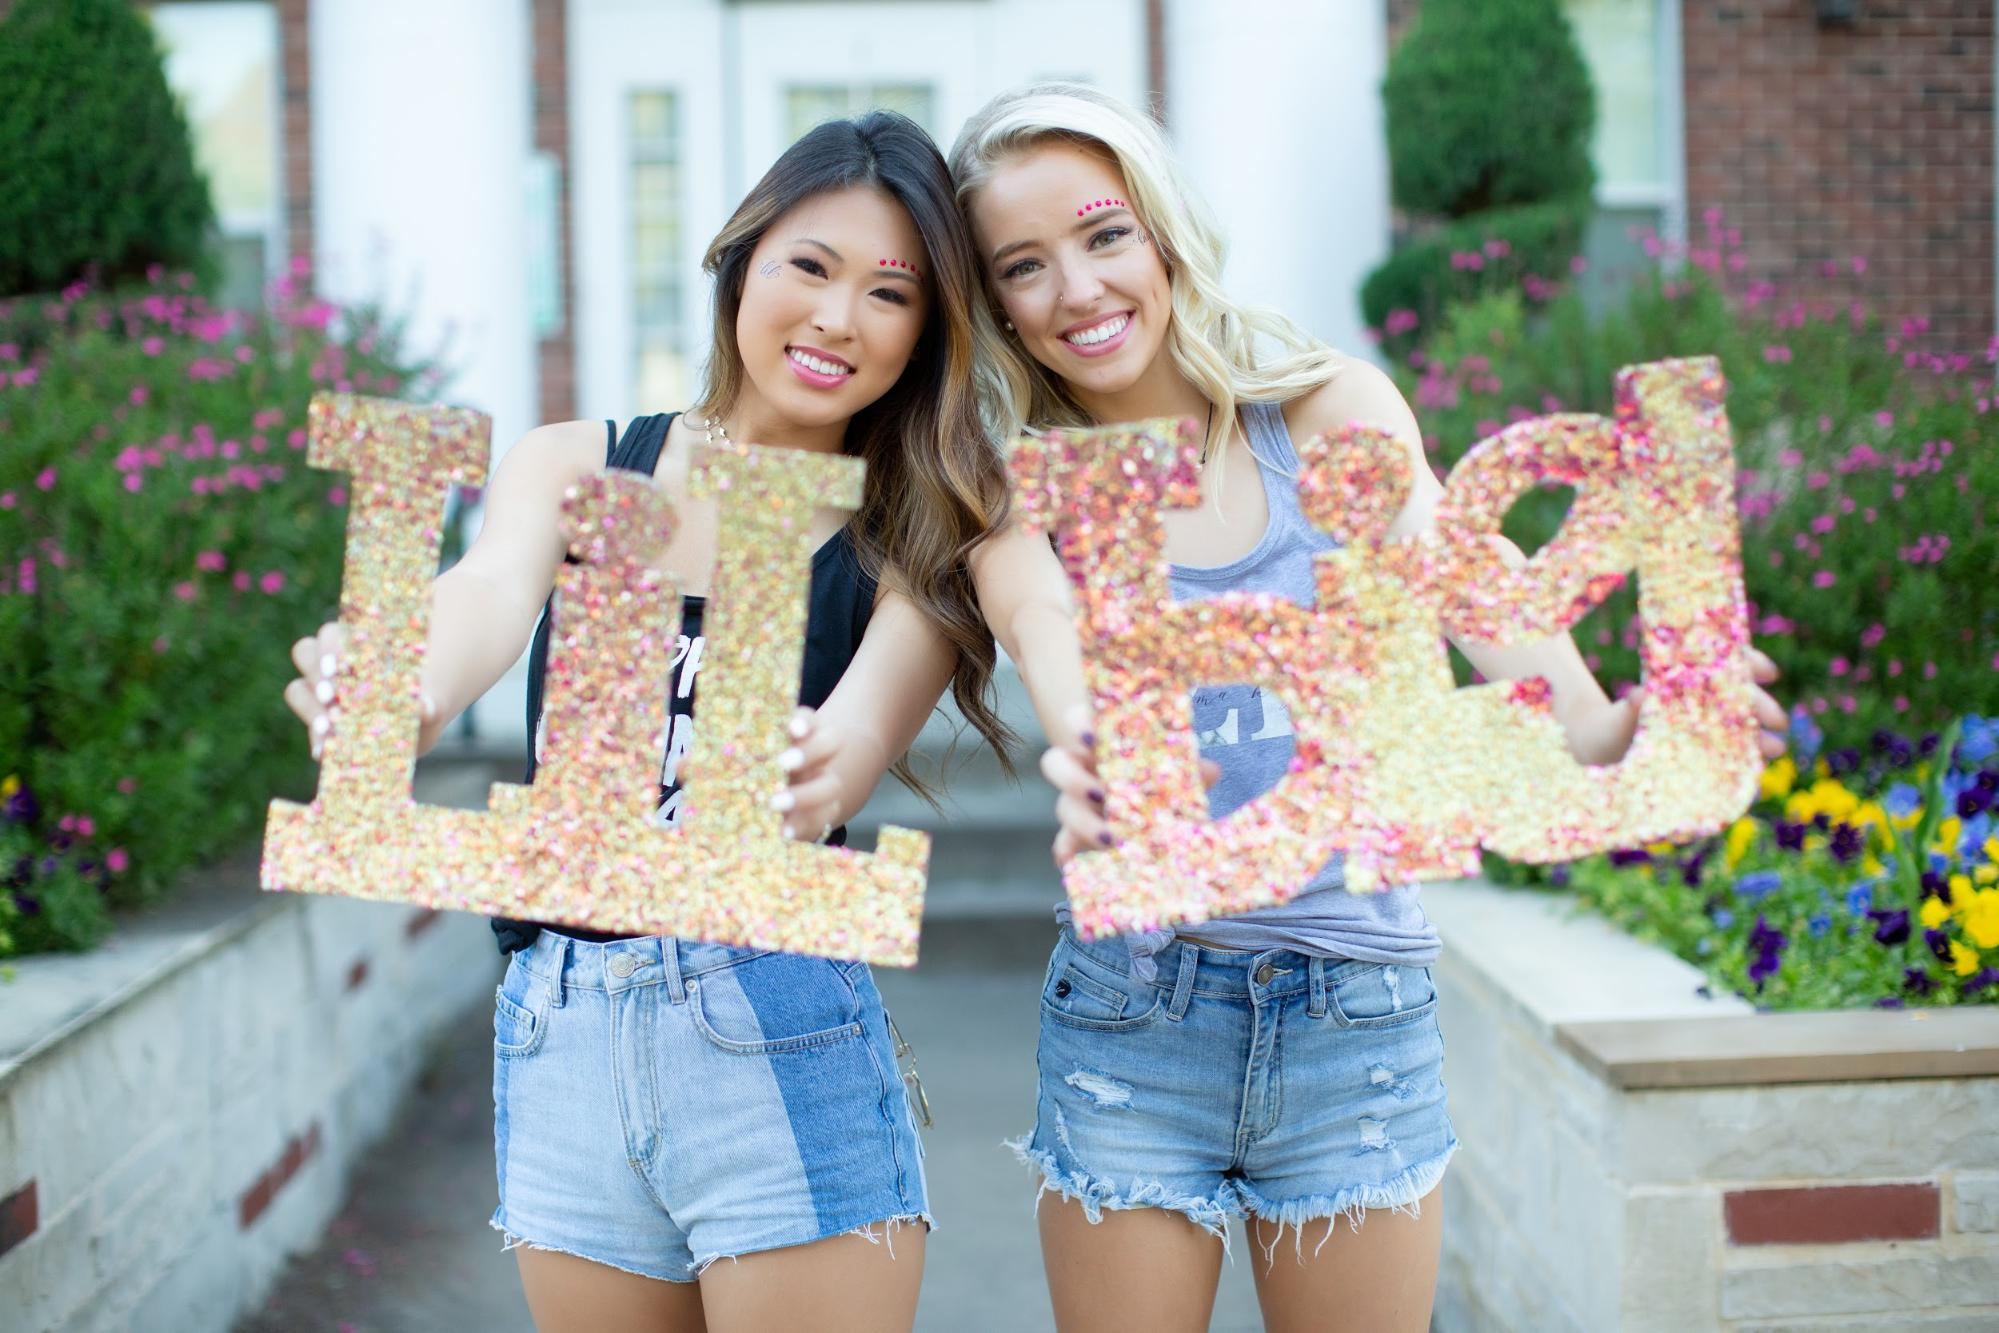 Sorority sisters holding large greek letters